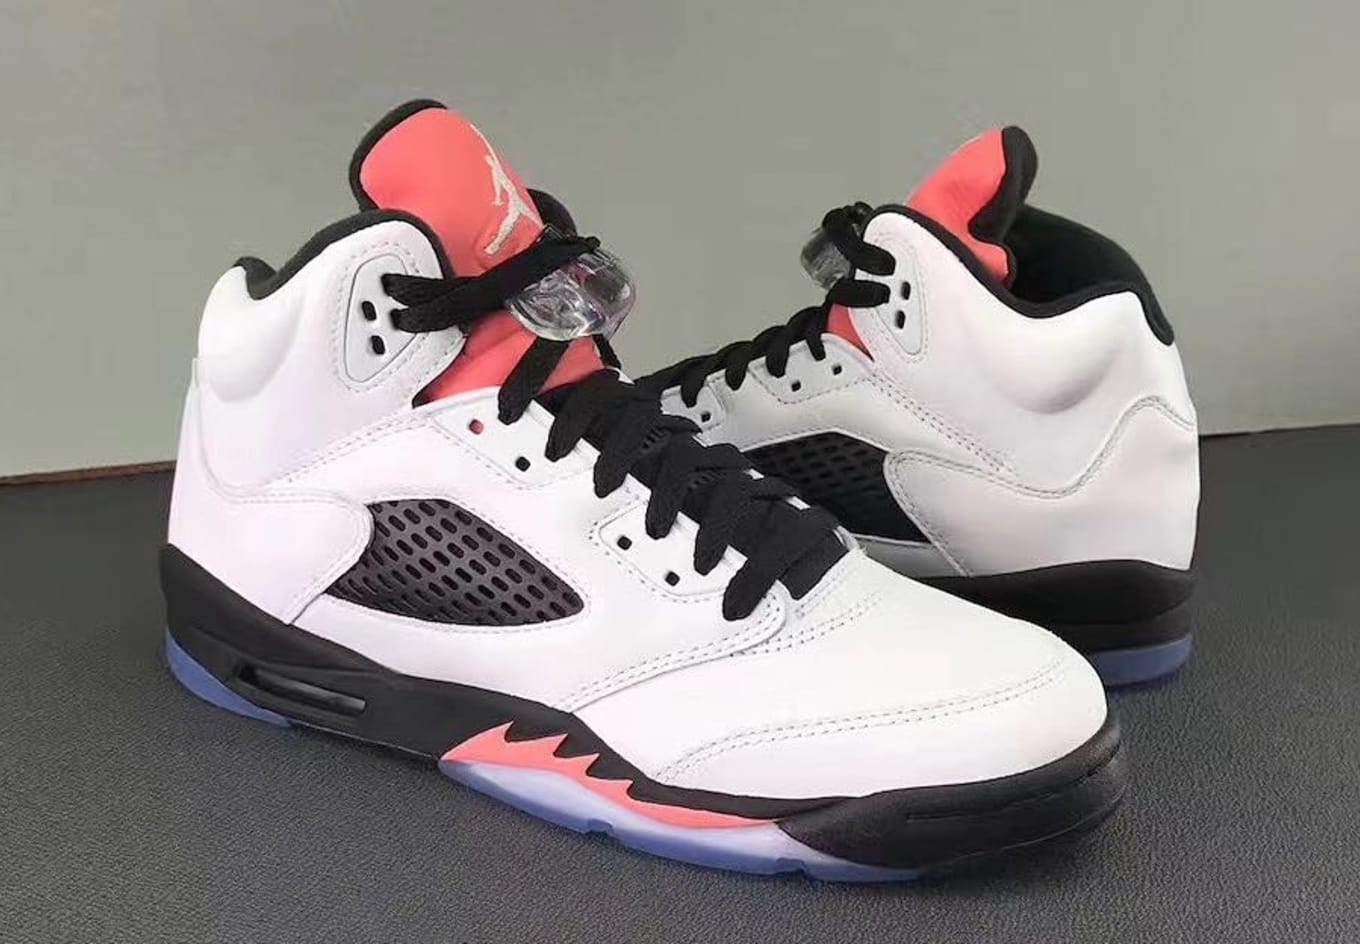 f2beae61123 Air Jordan 5 GS Sunblush Release Date 440892-115 | Sole Collector